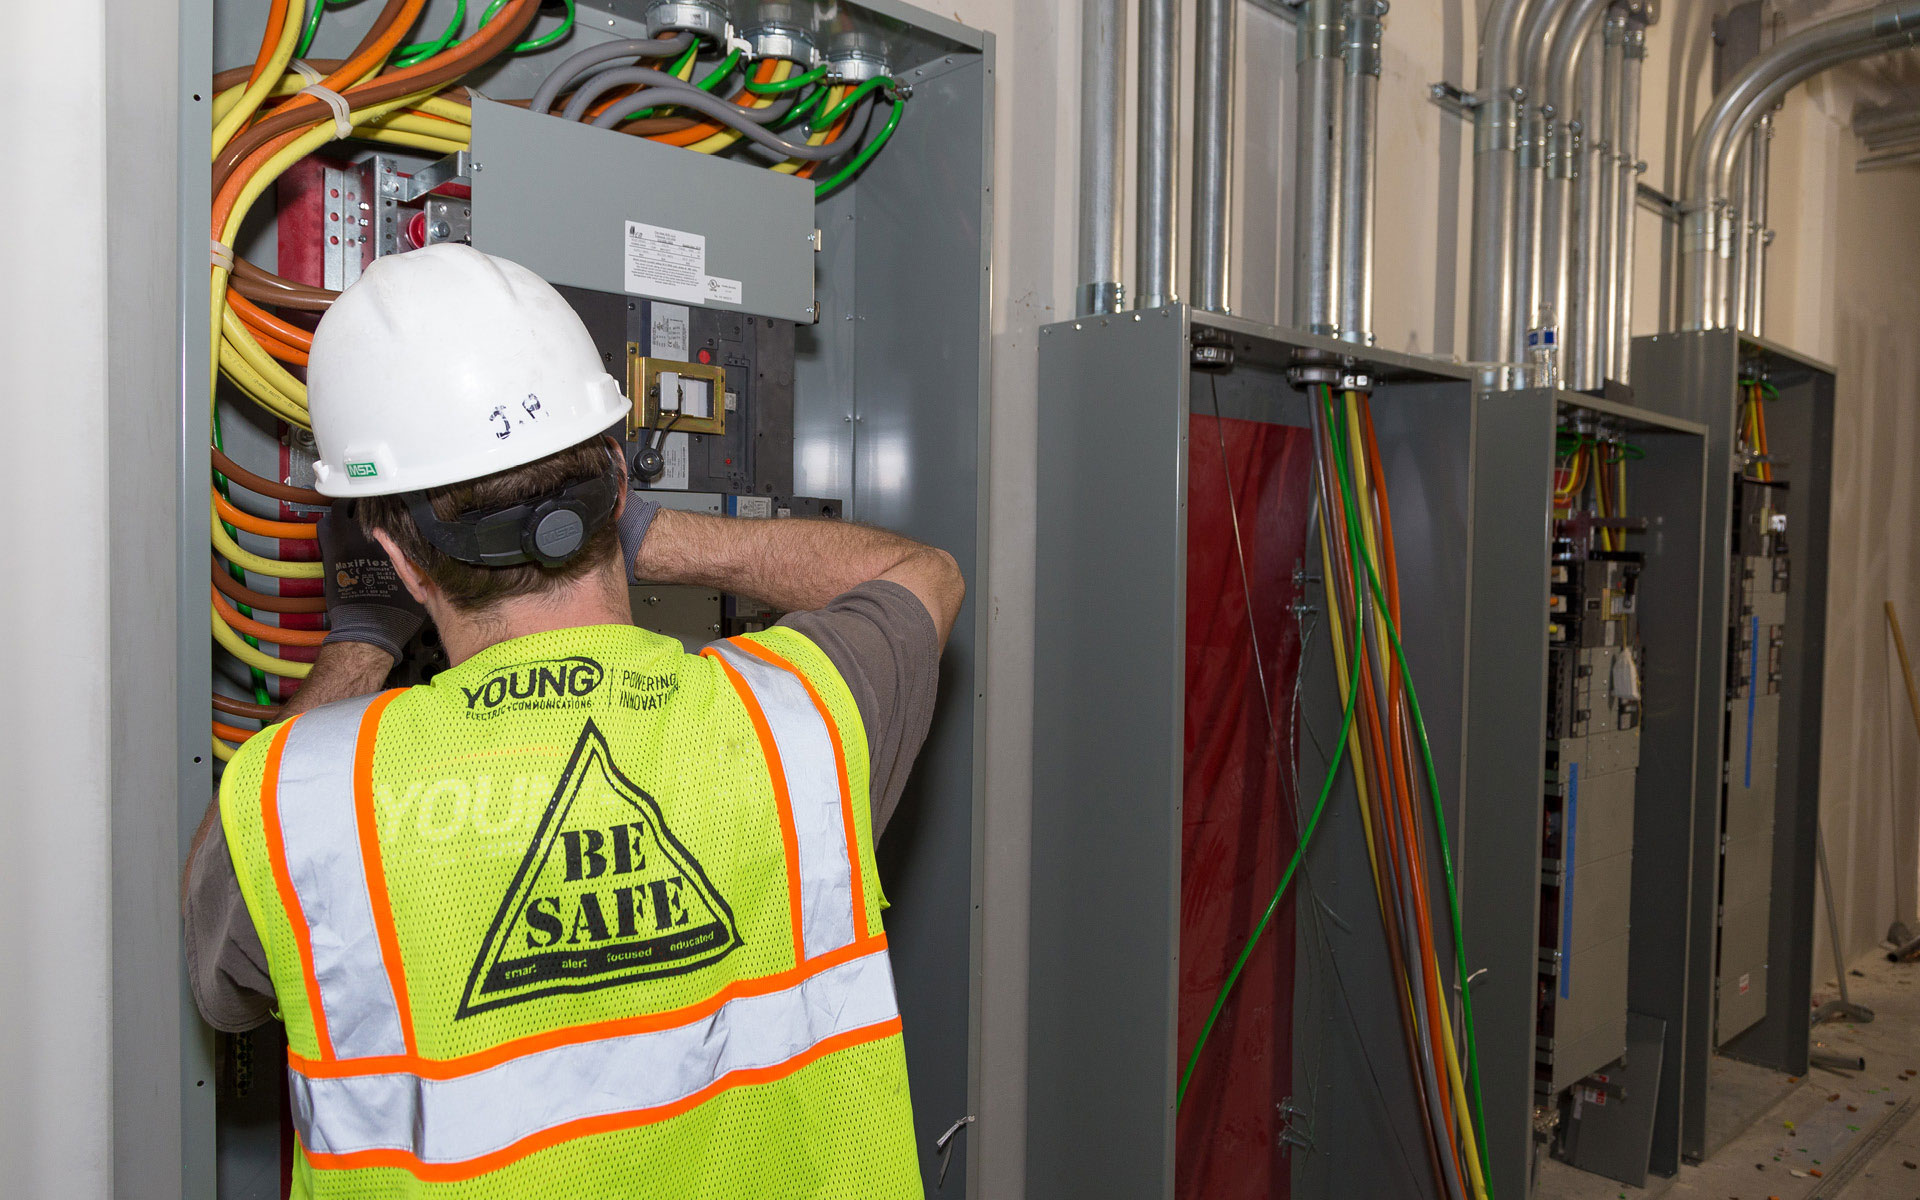 Young Electric + Communications Safety Program